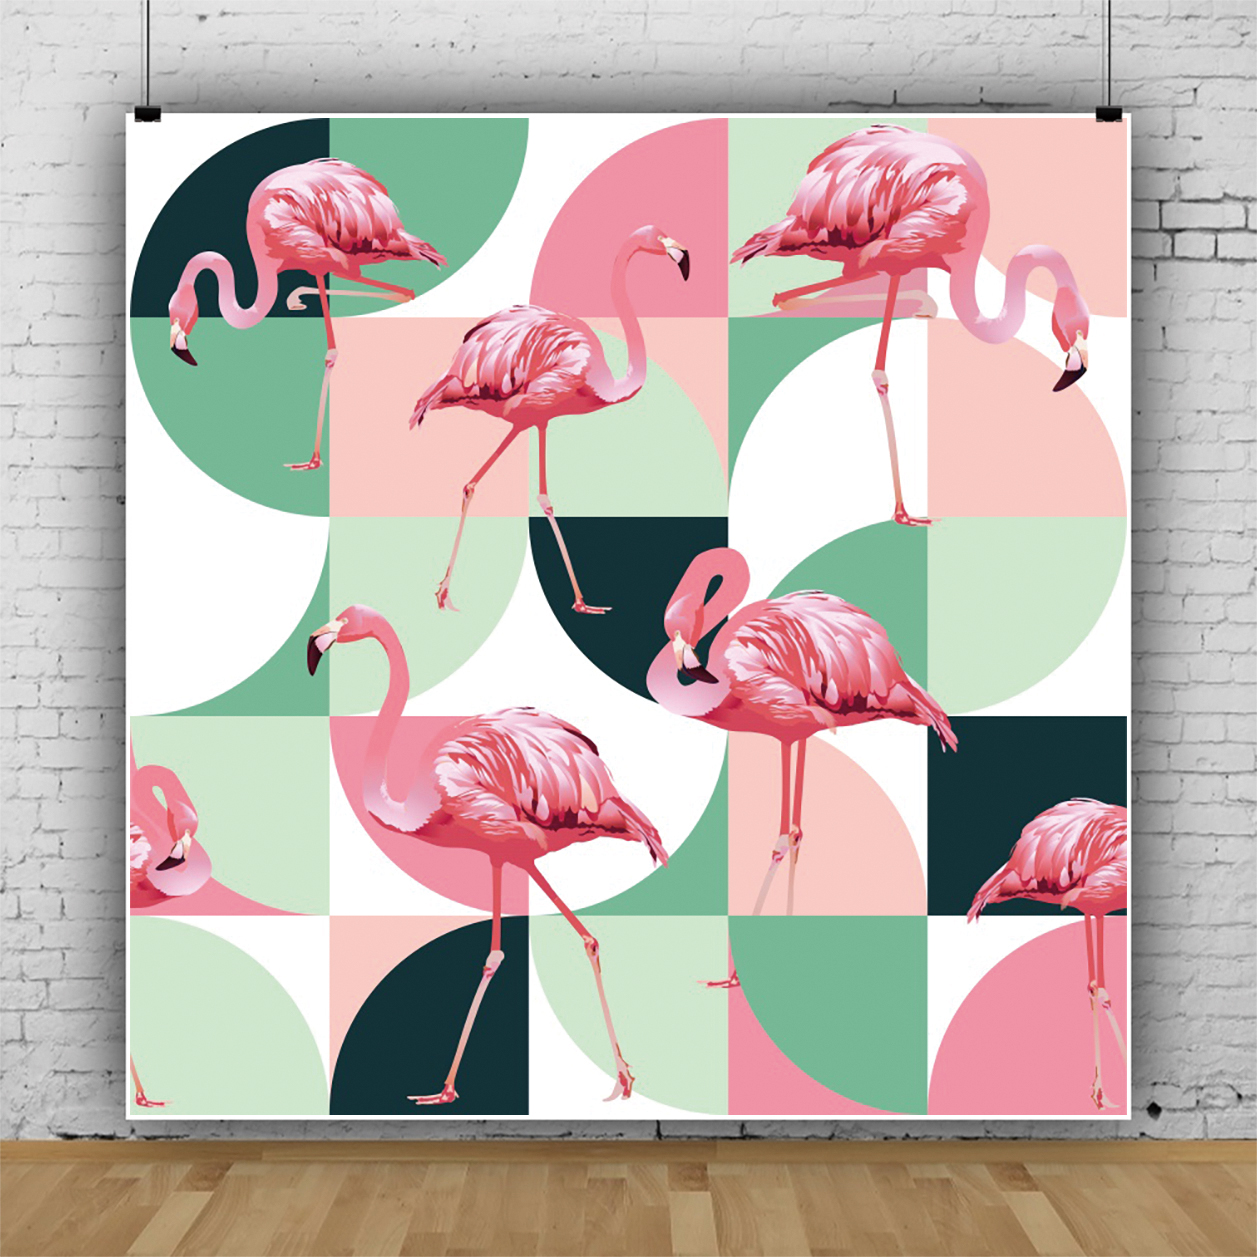 Mocsicka 8x8ft Custom Any Size,Material and Picture